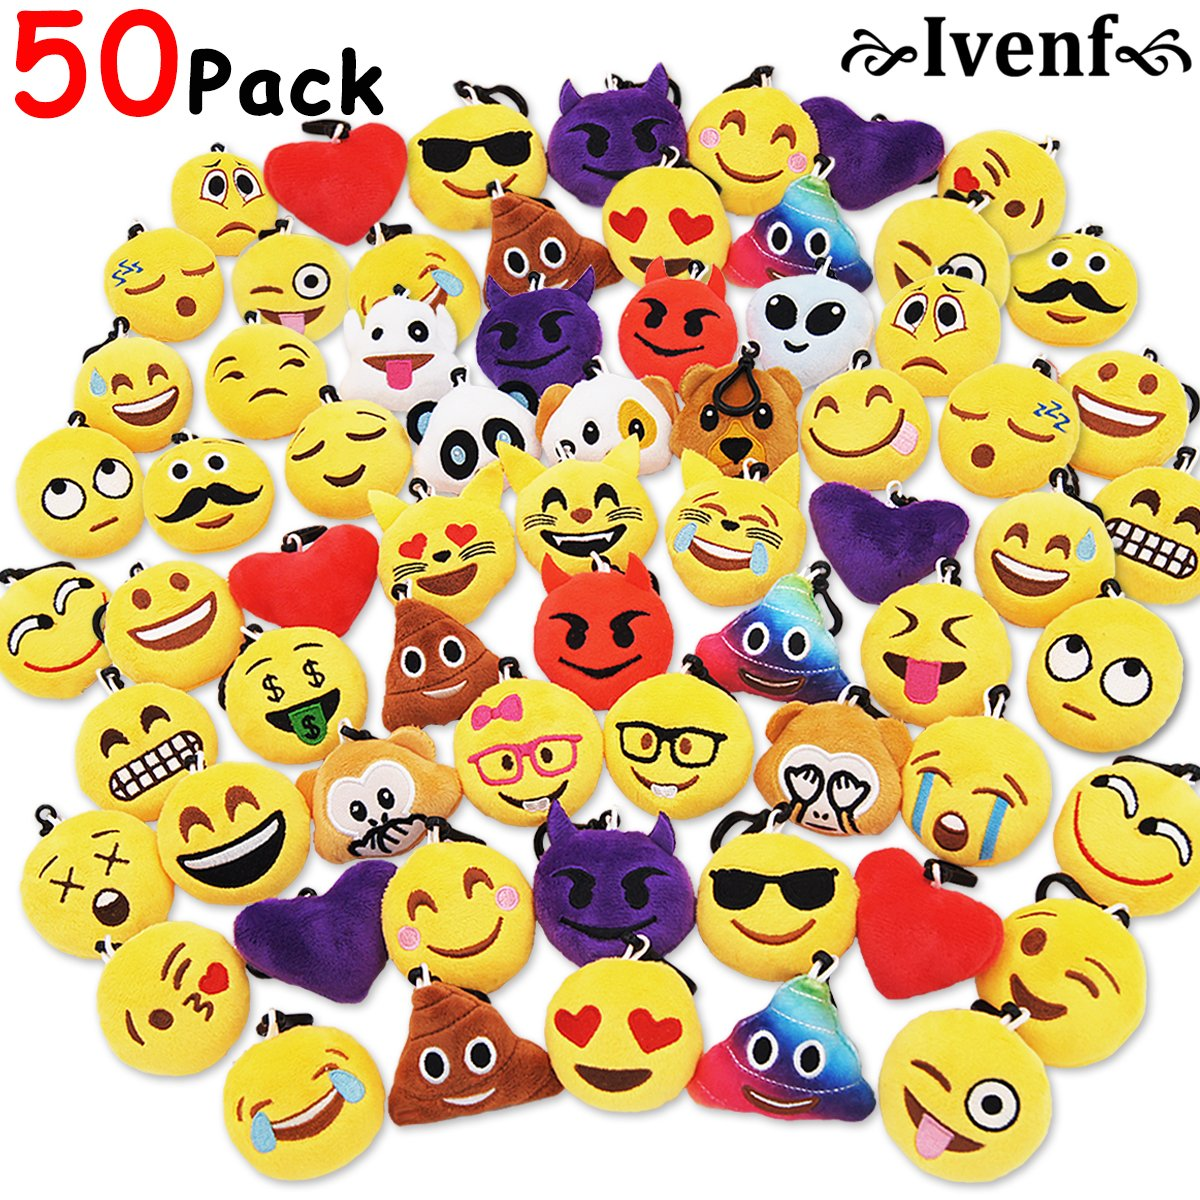 Ivenf Pack of 50 5cm/2'' Emoji Poop Plush Keychain Birthday Party Favors Supplies Mini Pillows Set, Emoticon Backpack Clips, Goodie Bag Stuffers Pinata Fillers Novelty Gifts Toys Prizes for Kids by Ivenf